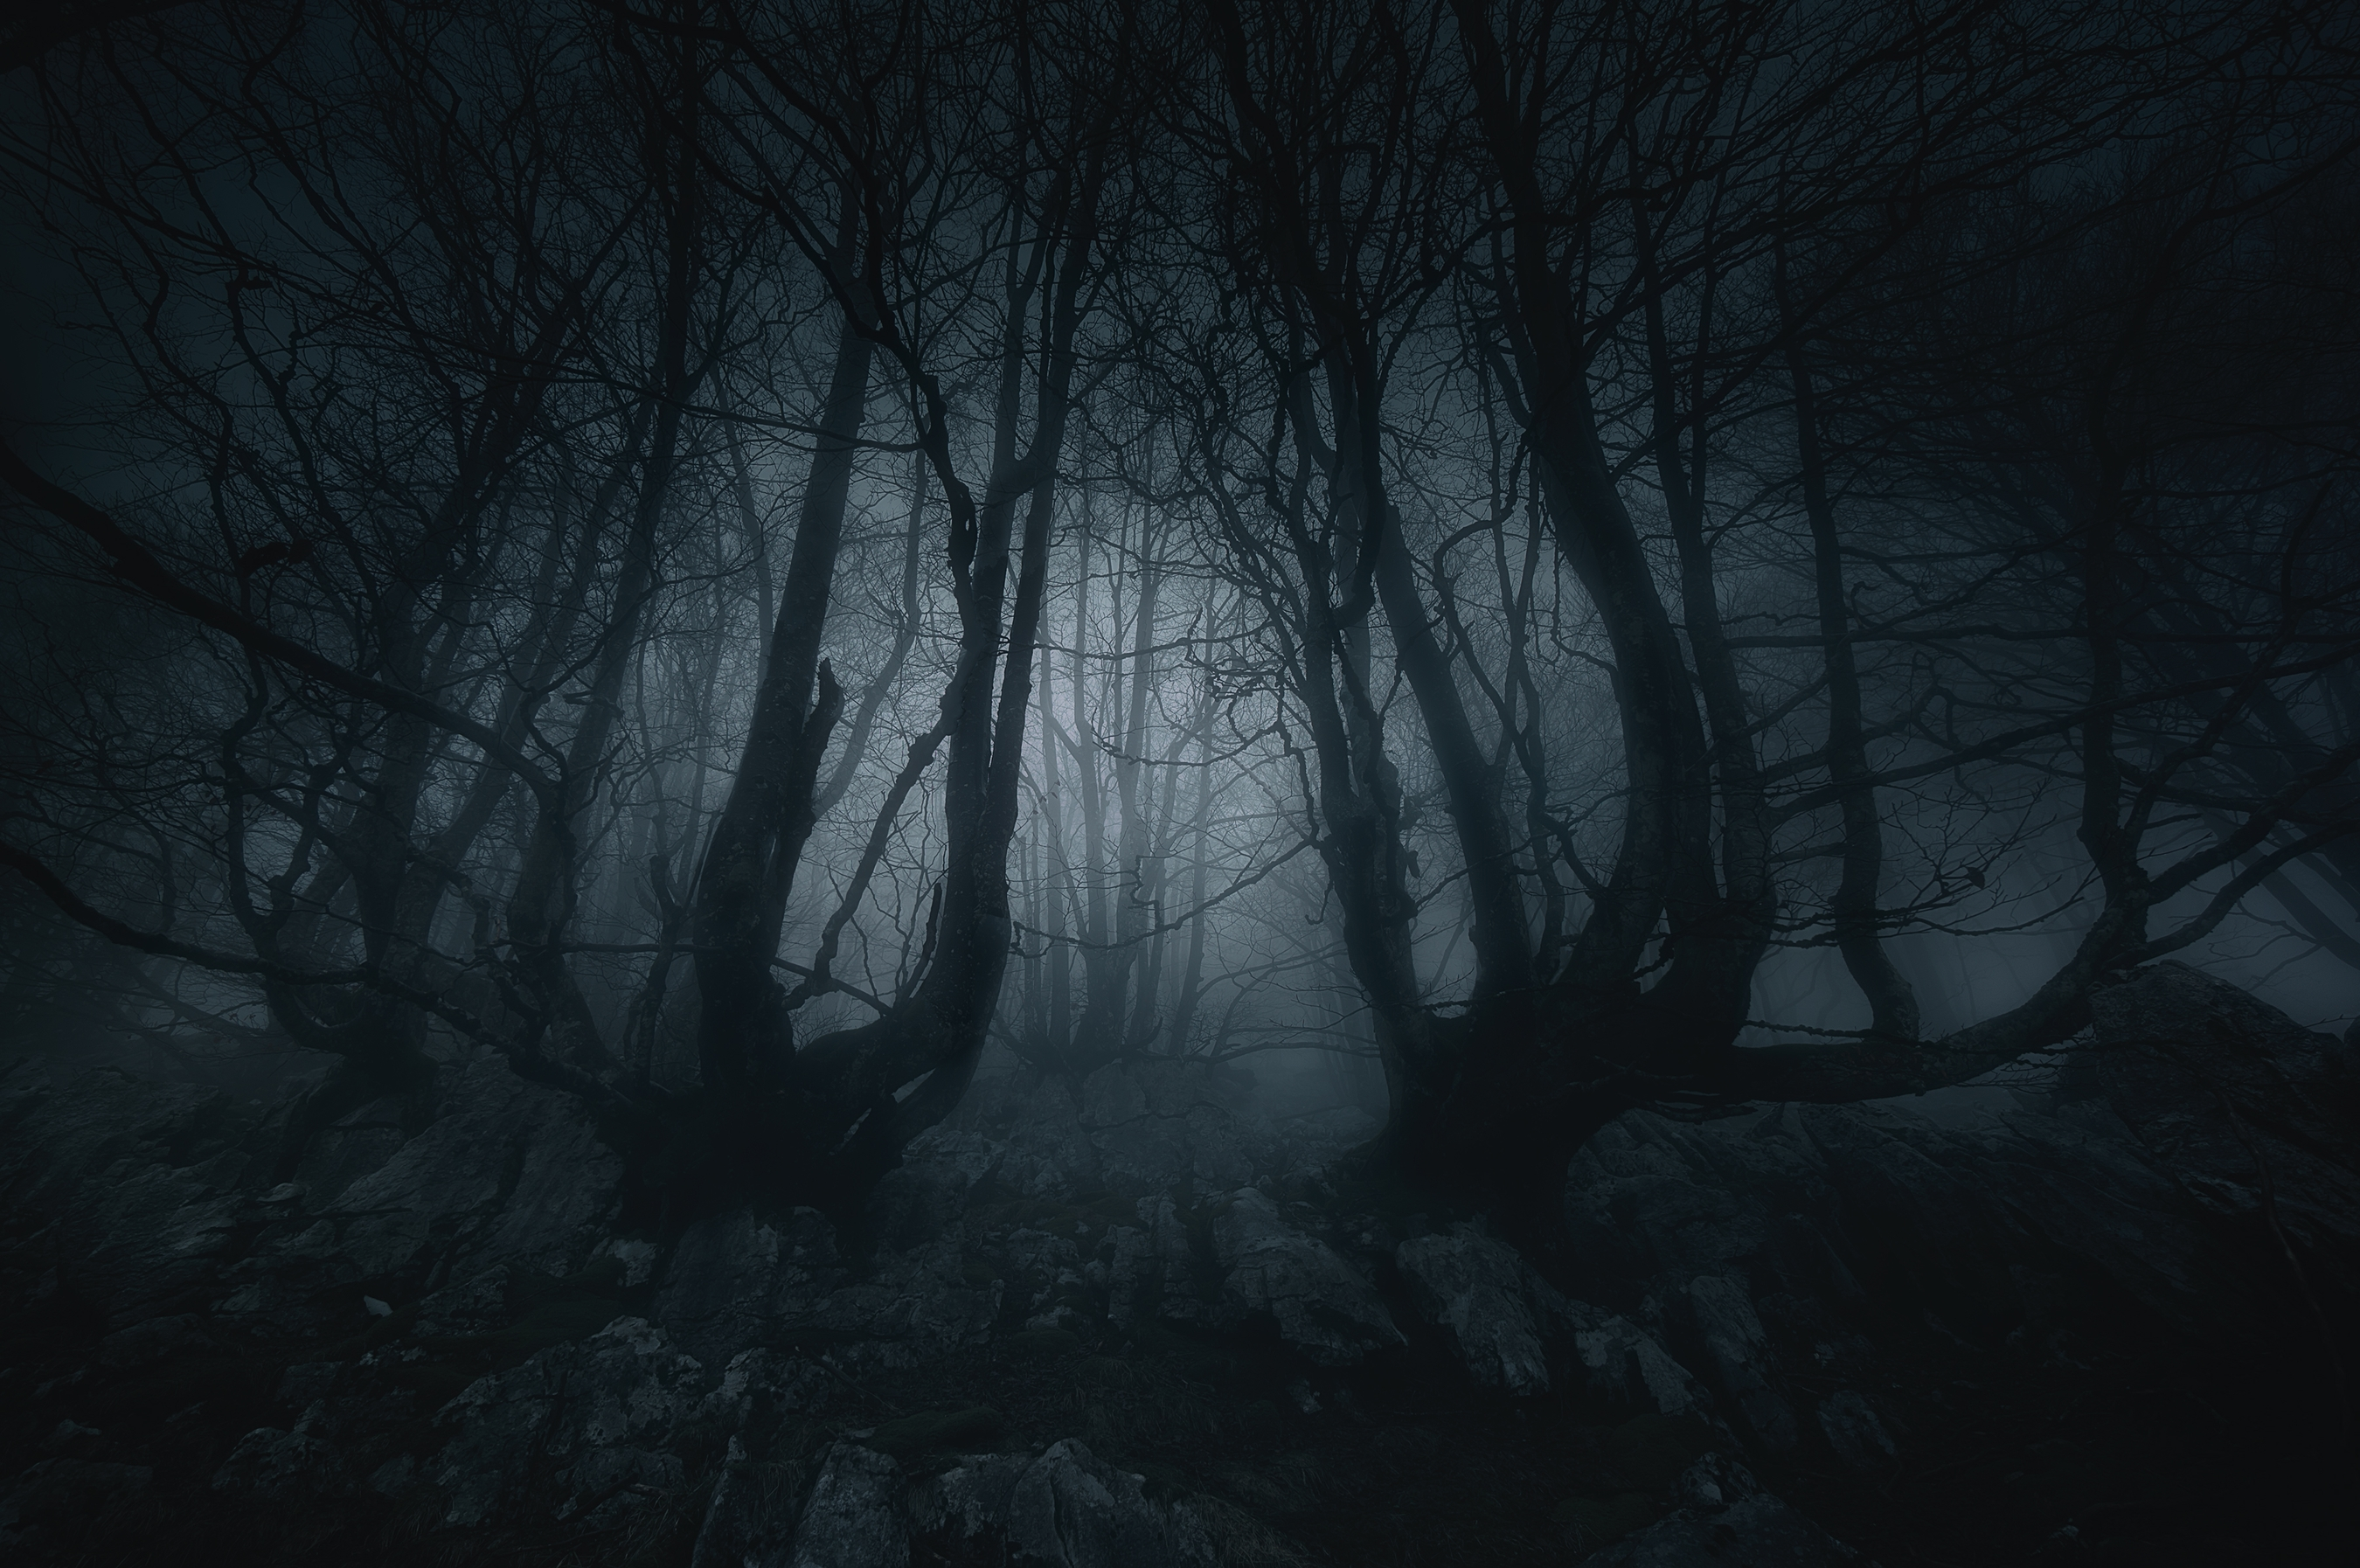 079713130-nightmare-forest-creepy-treesjpeg